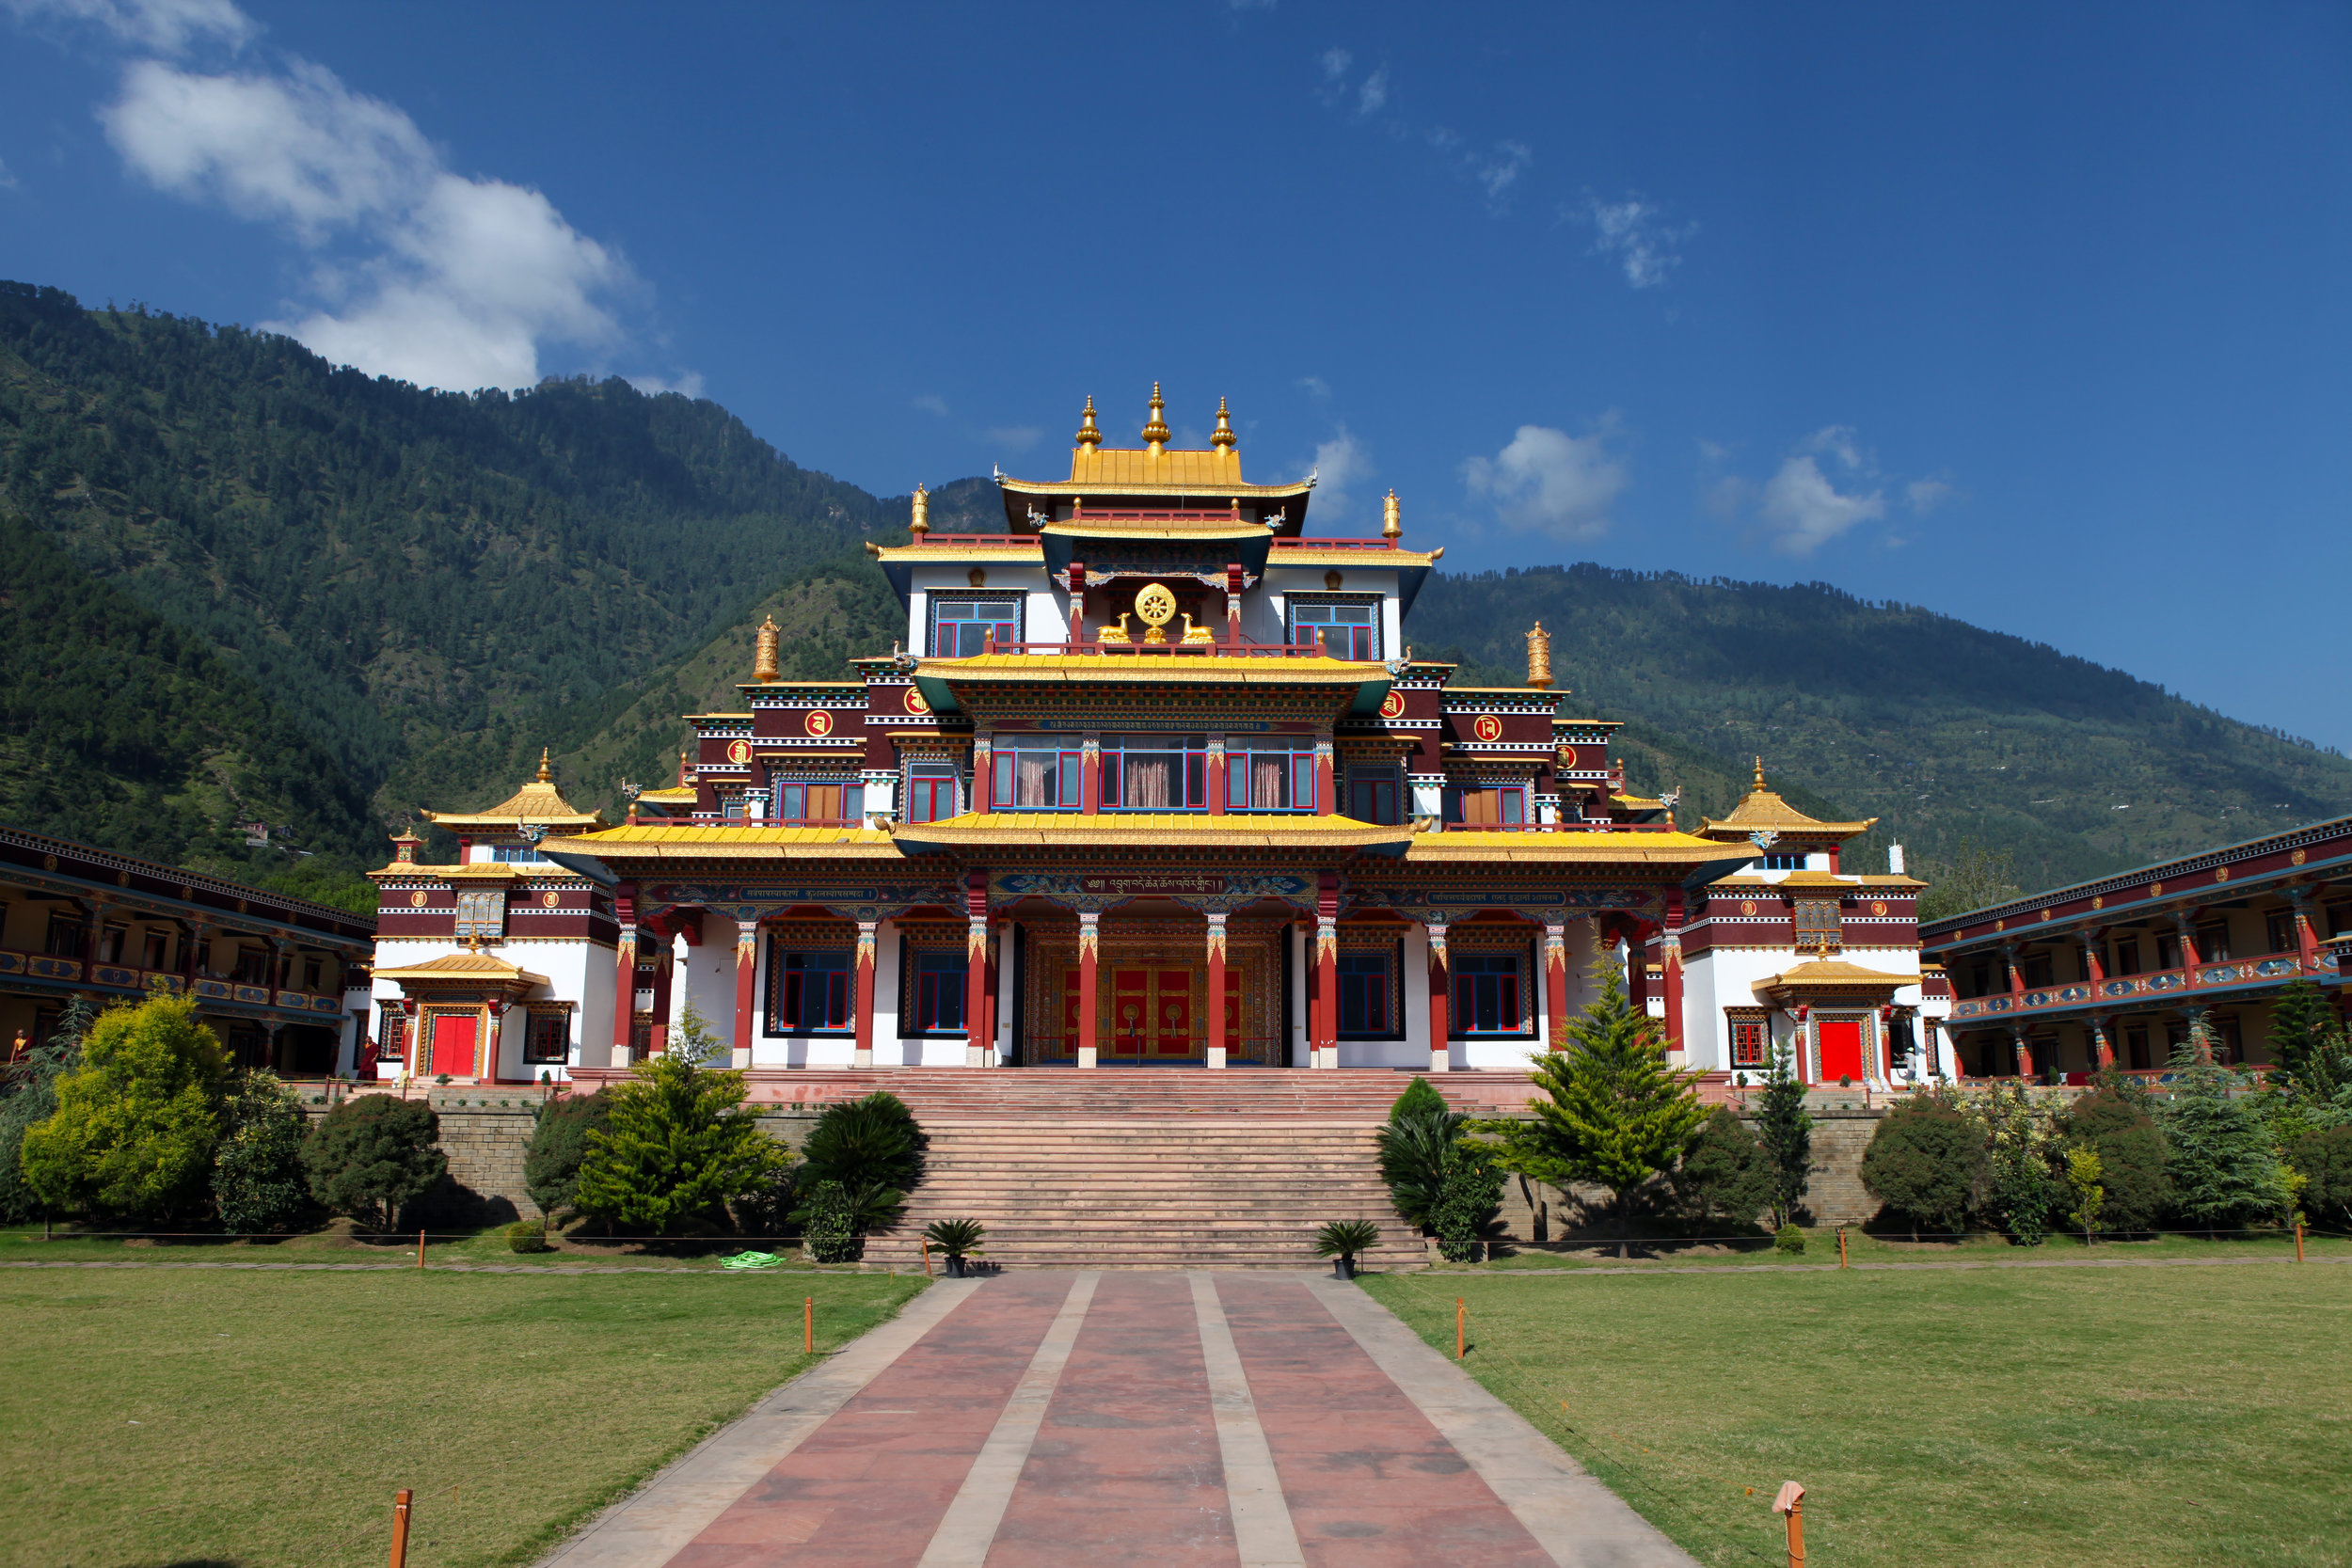 The newly reestablished Dechen Choekhor Monastery in Kullu, H.P. India was officially inaugurated in early October, 2017.